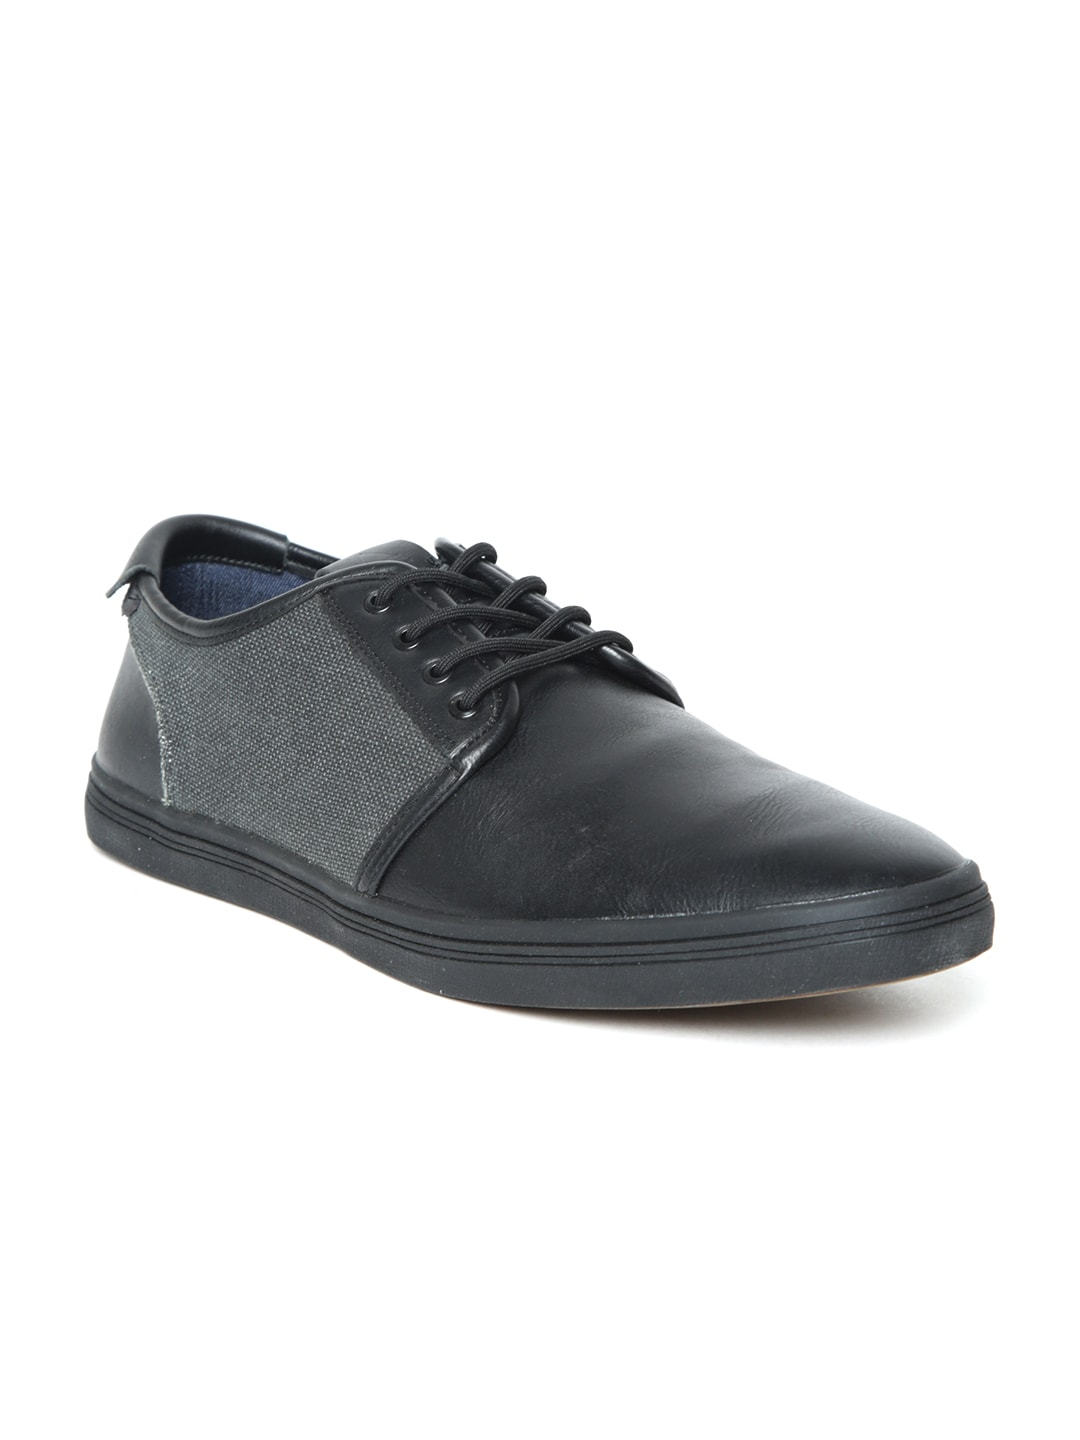 104b9907ac97 ALDO Shoes - Buy Shoes from ALDO Online Store in India